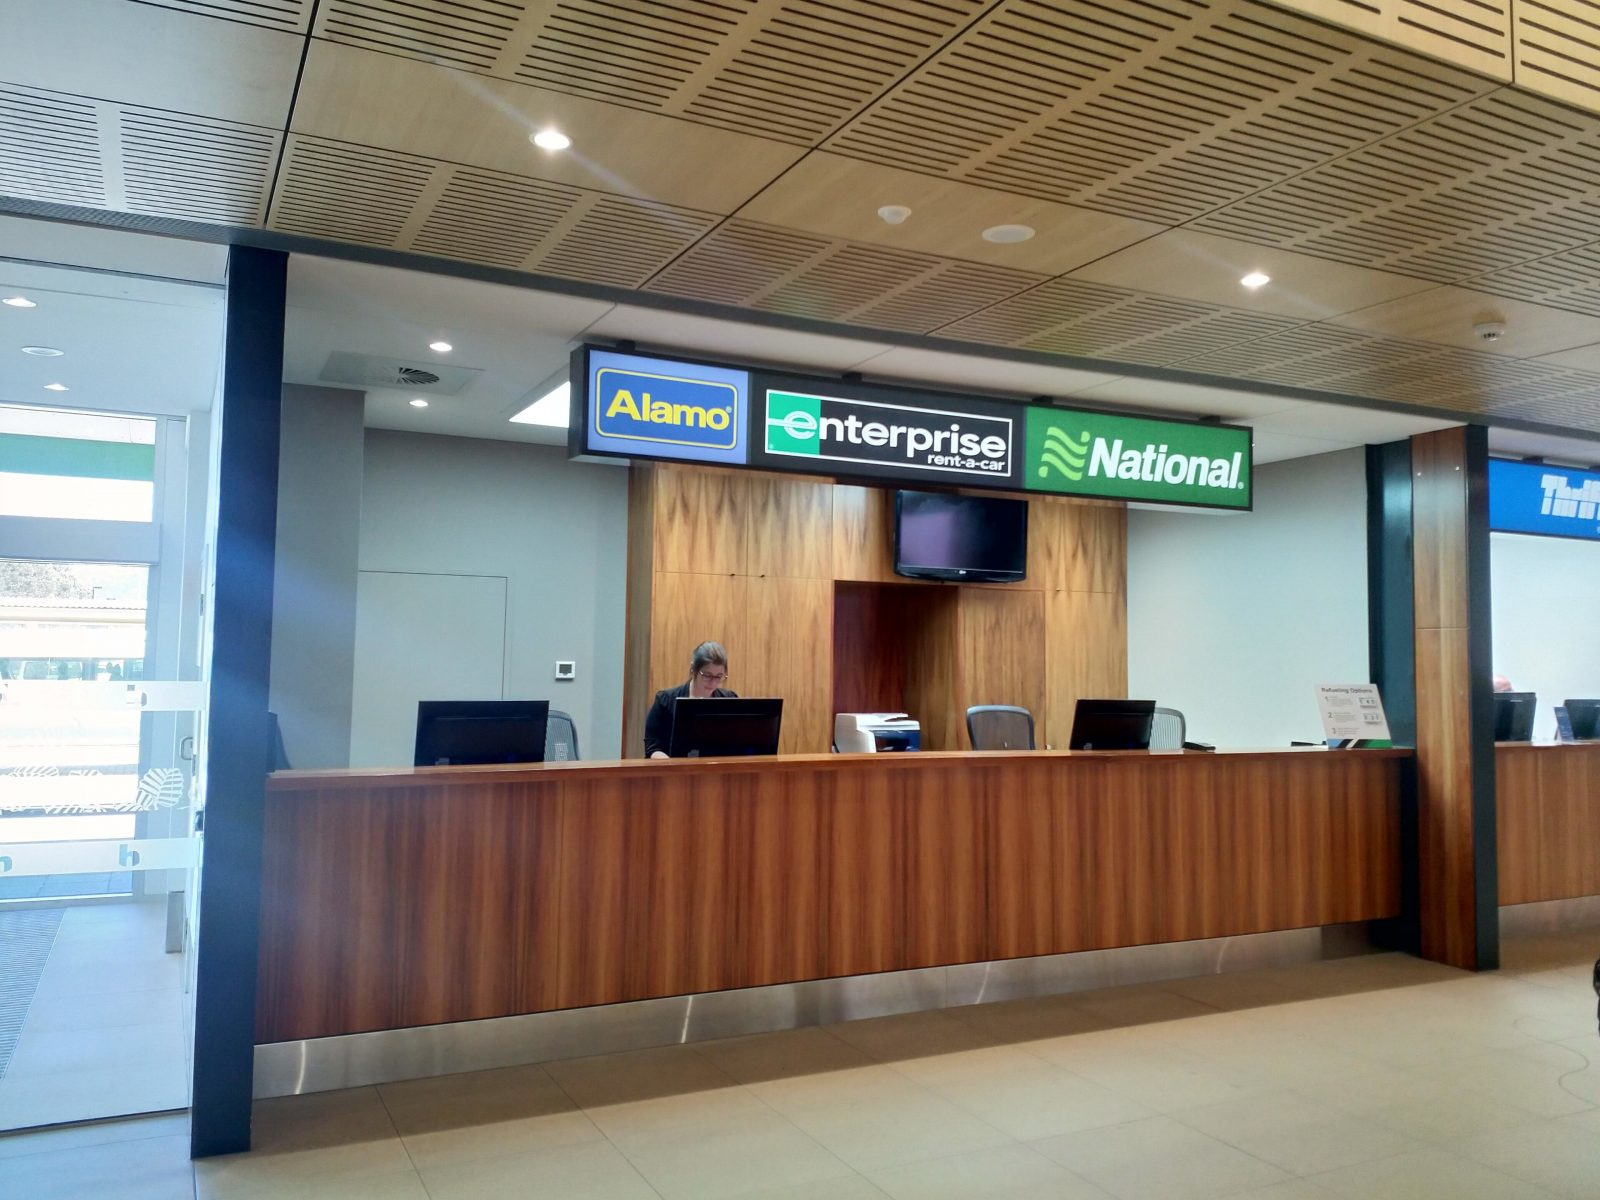 Enterprise Rent a Car Hobart Airport Location Image